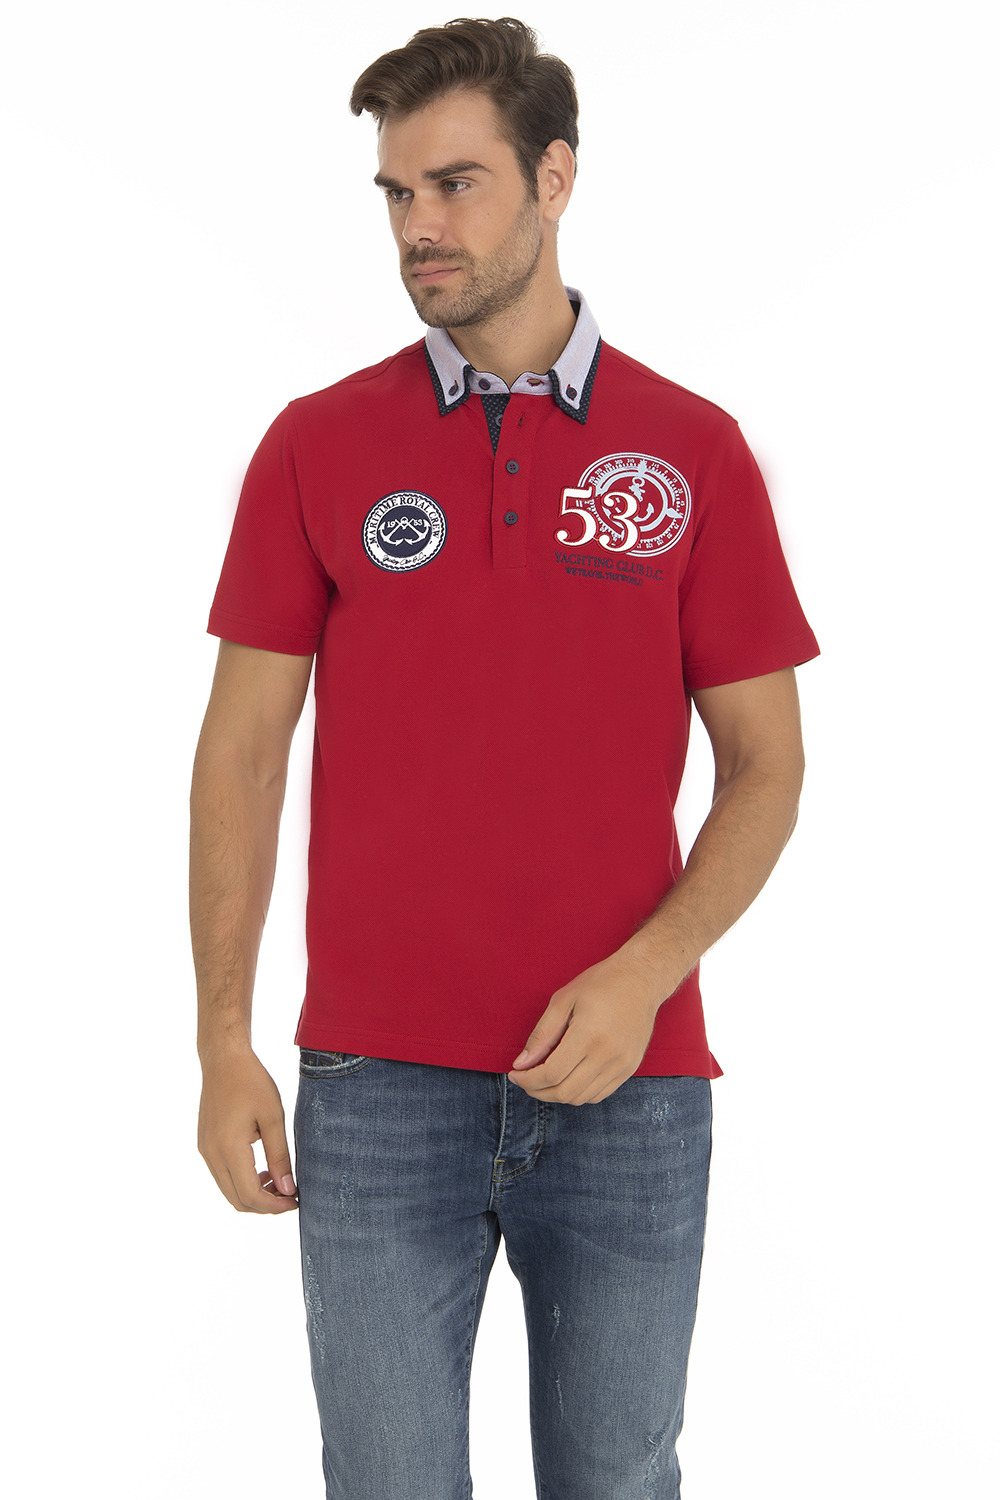 Men's Poloshirt Pique Red Cotton